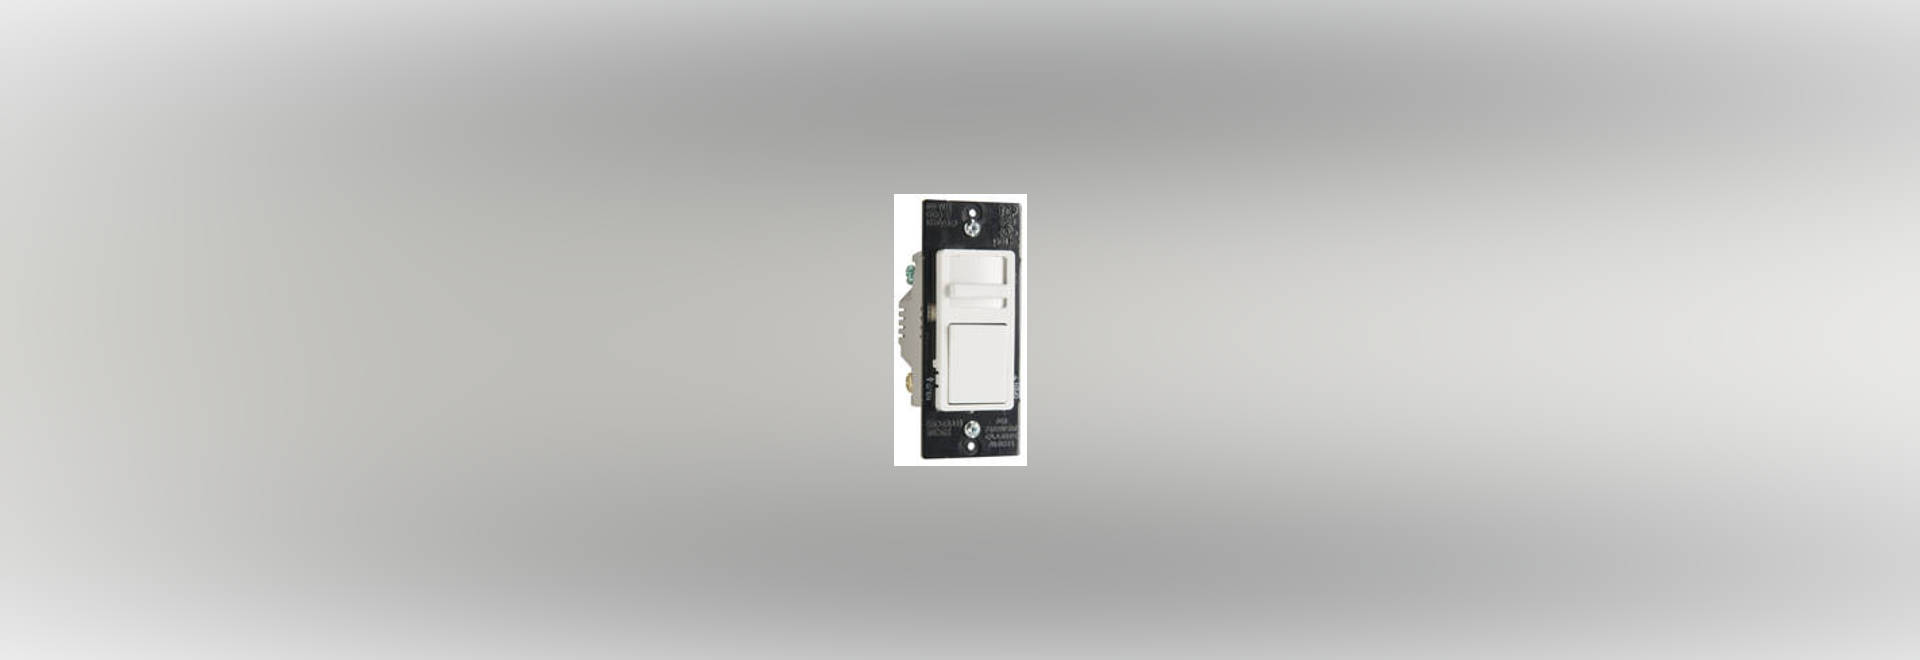 Dimmer Switches work with LED, CFL, and incandescent lighting ...